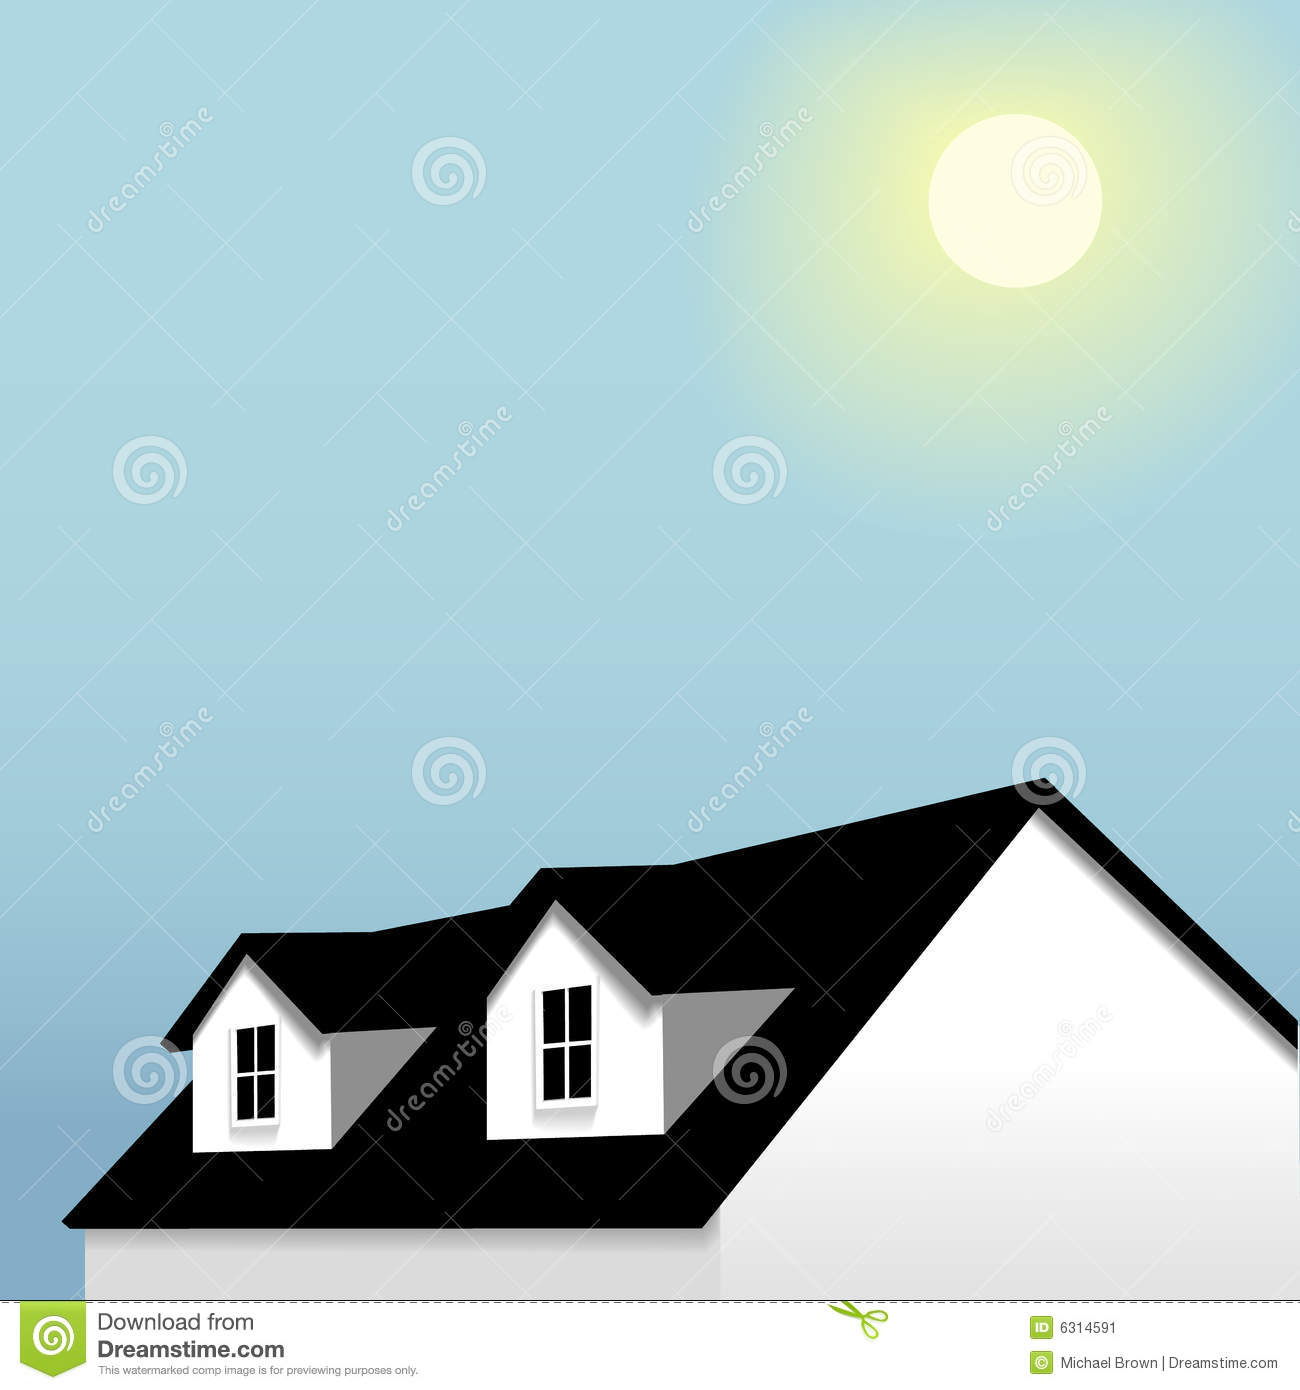 Dormer Stock Illustrations.